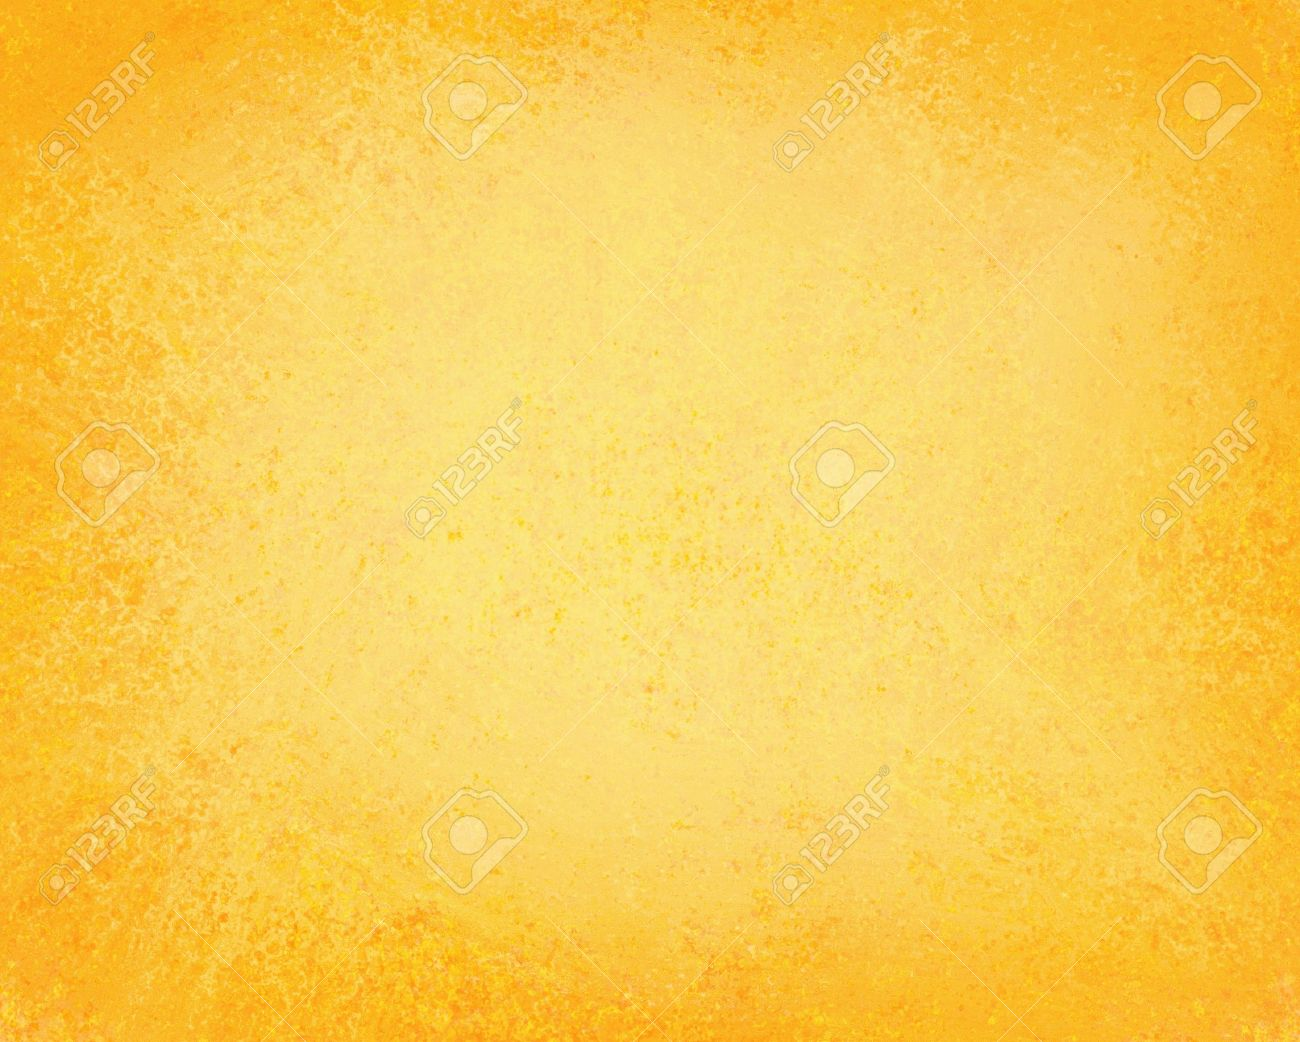 Website soft colors - Stock Photo Bright Yellow Background Solid Color Primary Image With Soft Vintage Grunge Background Texture Design Layout Yellow Paper For Brochure Ad Or